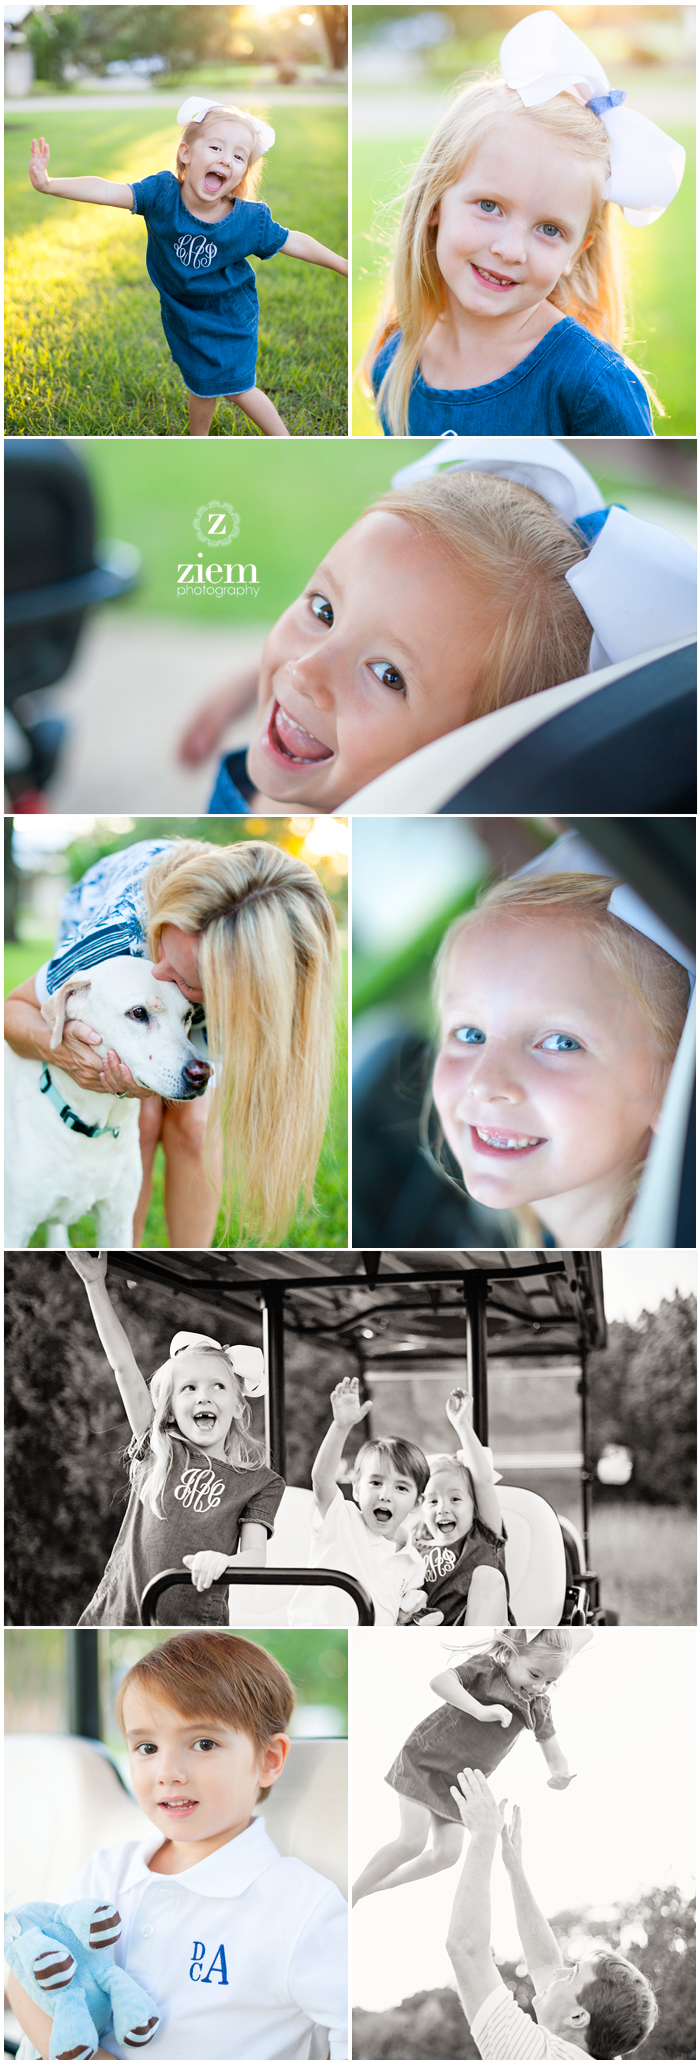 Austin Family Photographers Austin Photography Mini Session ziem photography aghamalian dell trust